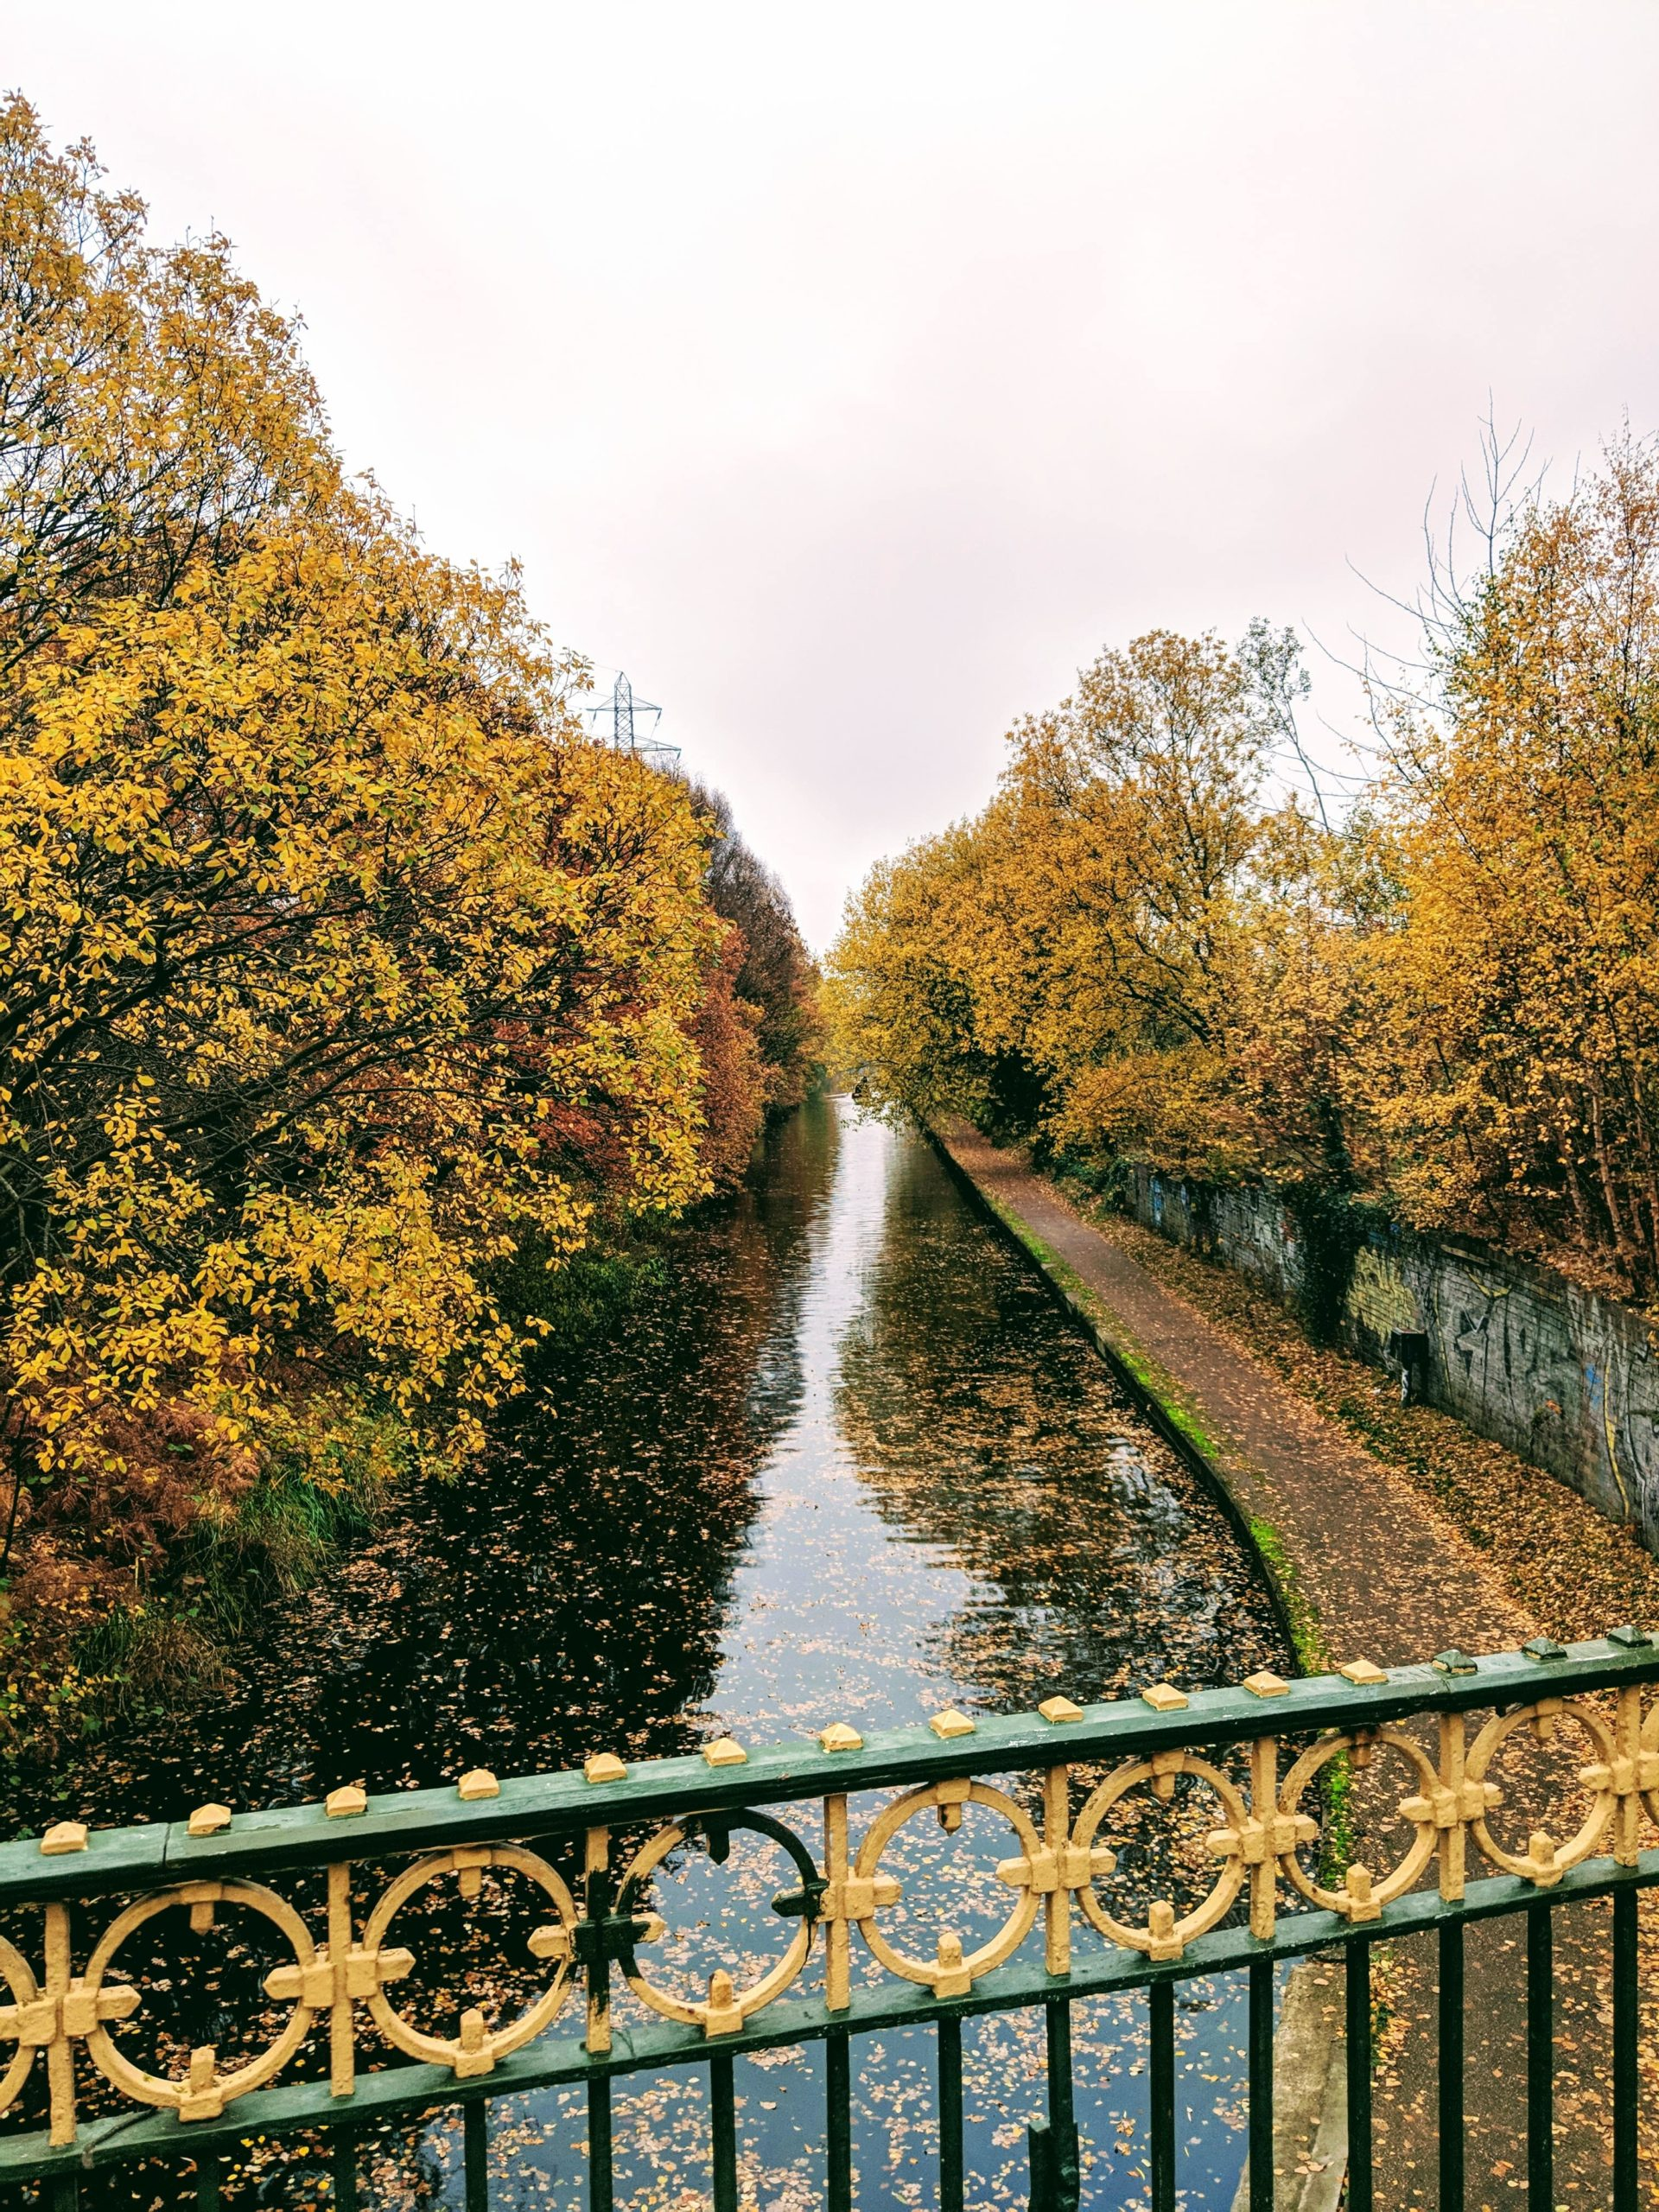 leafy trees overlooking canal in selly oak in brimingham